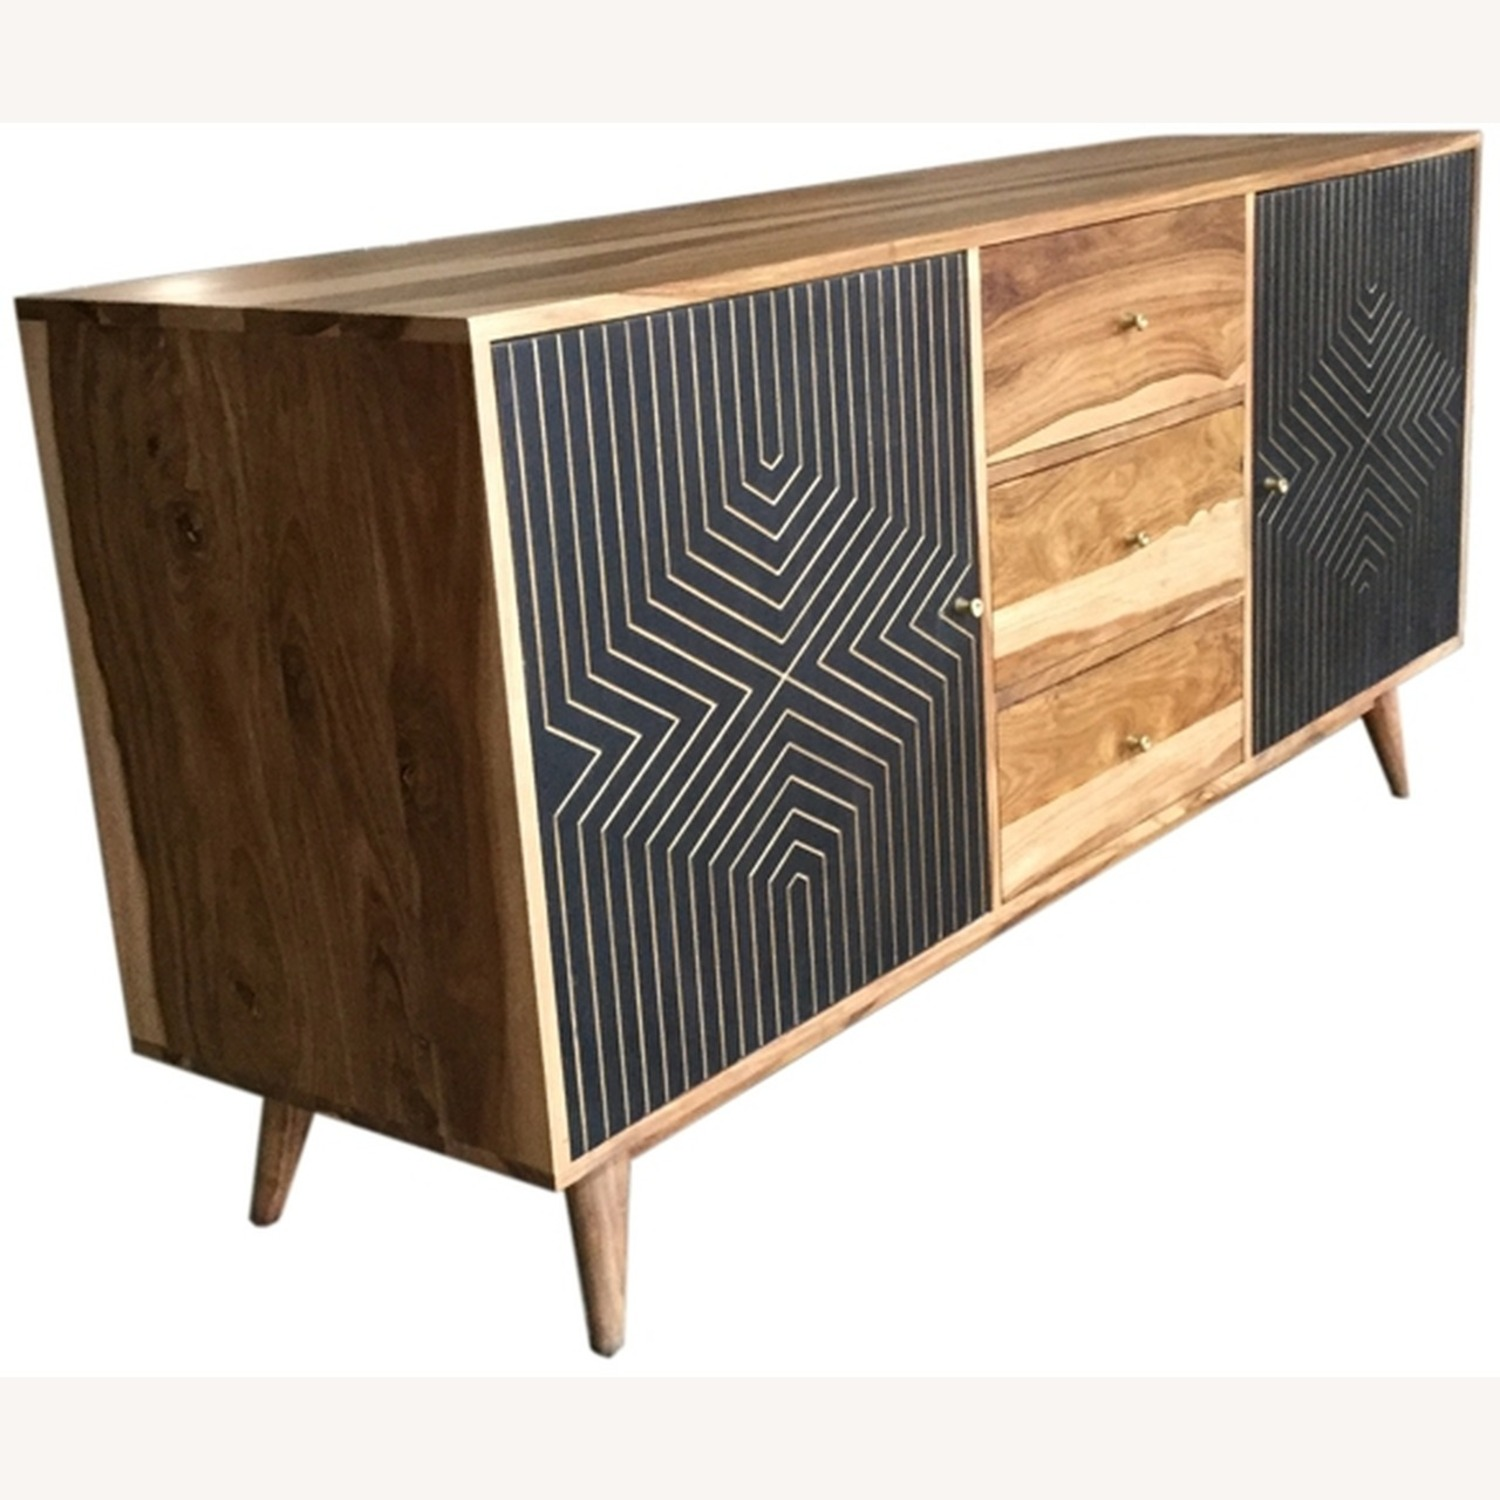 Server In Natural Finish W/ Art Deco Inspired - image-0